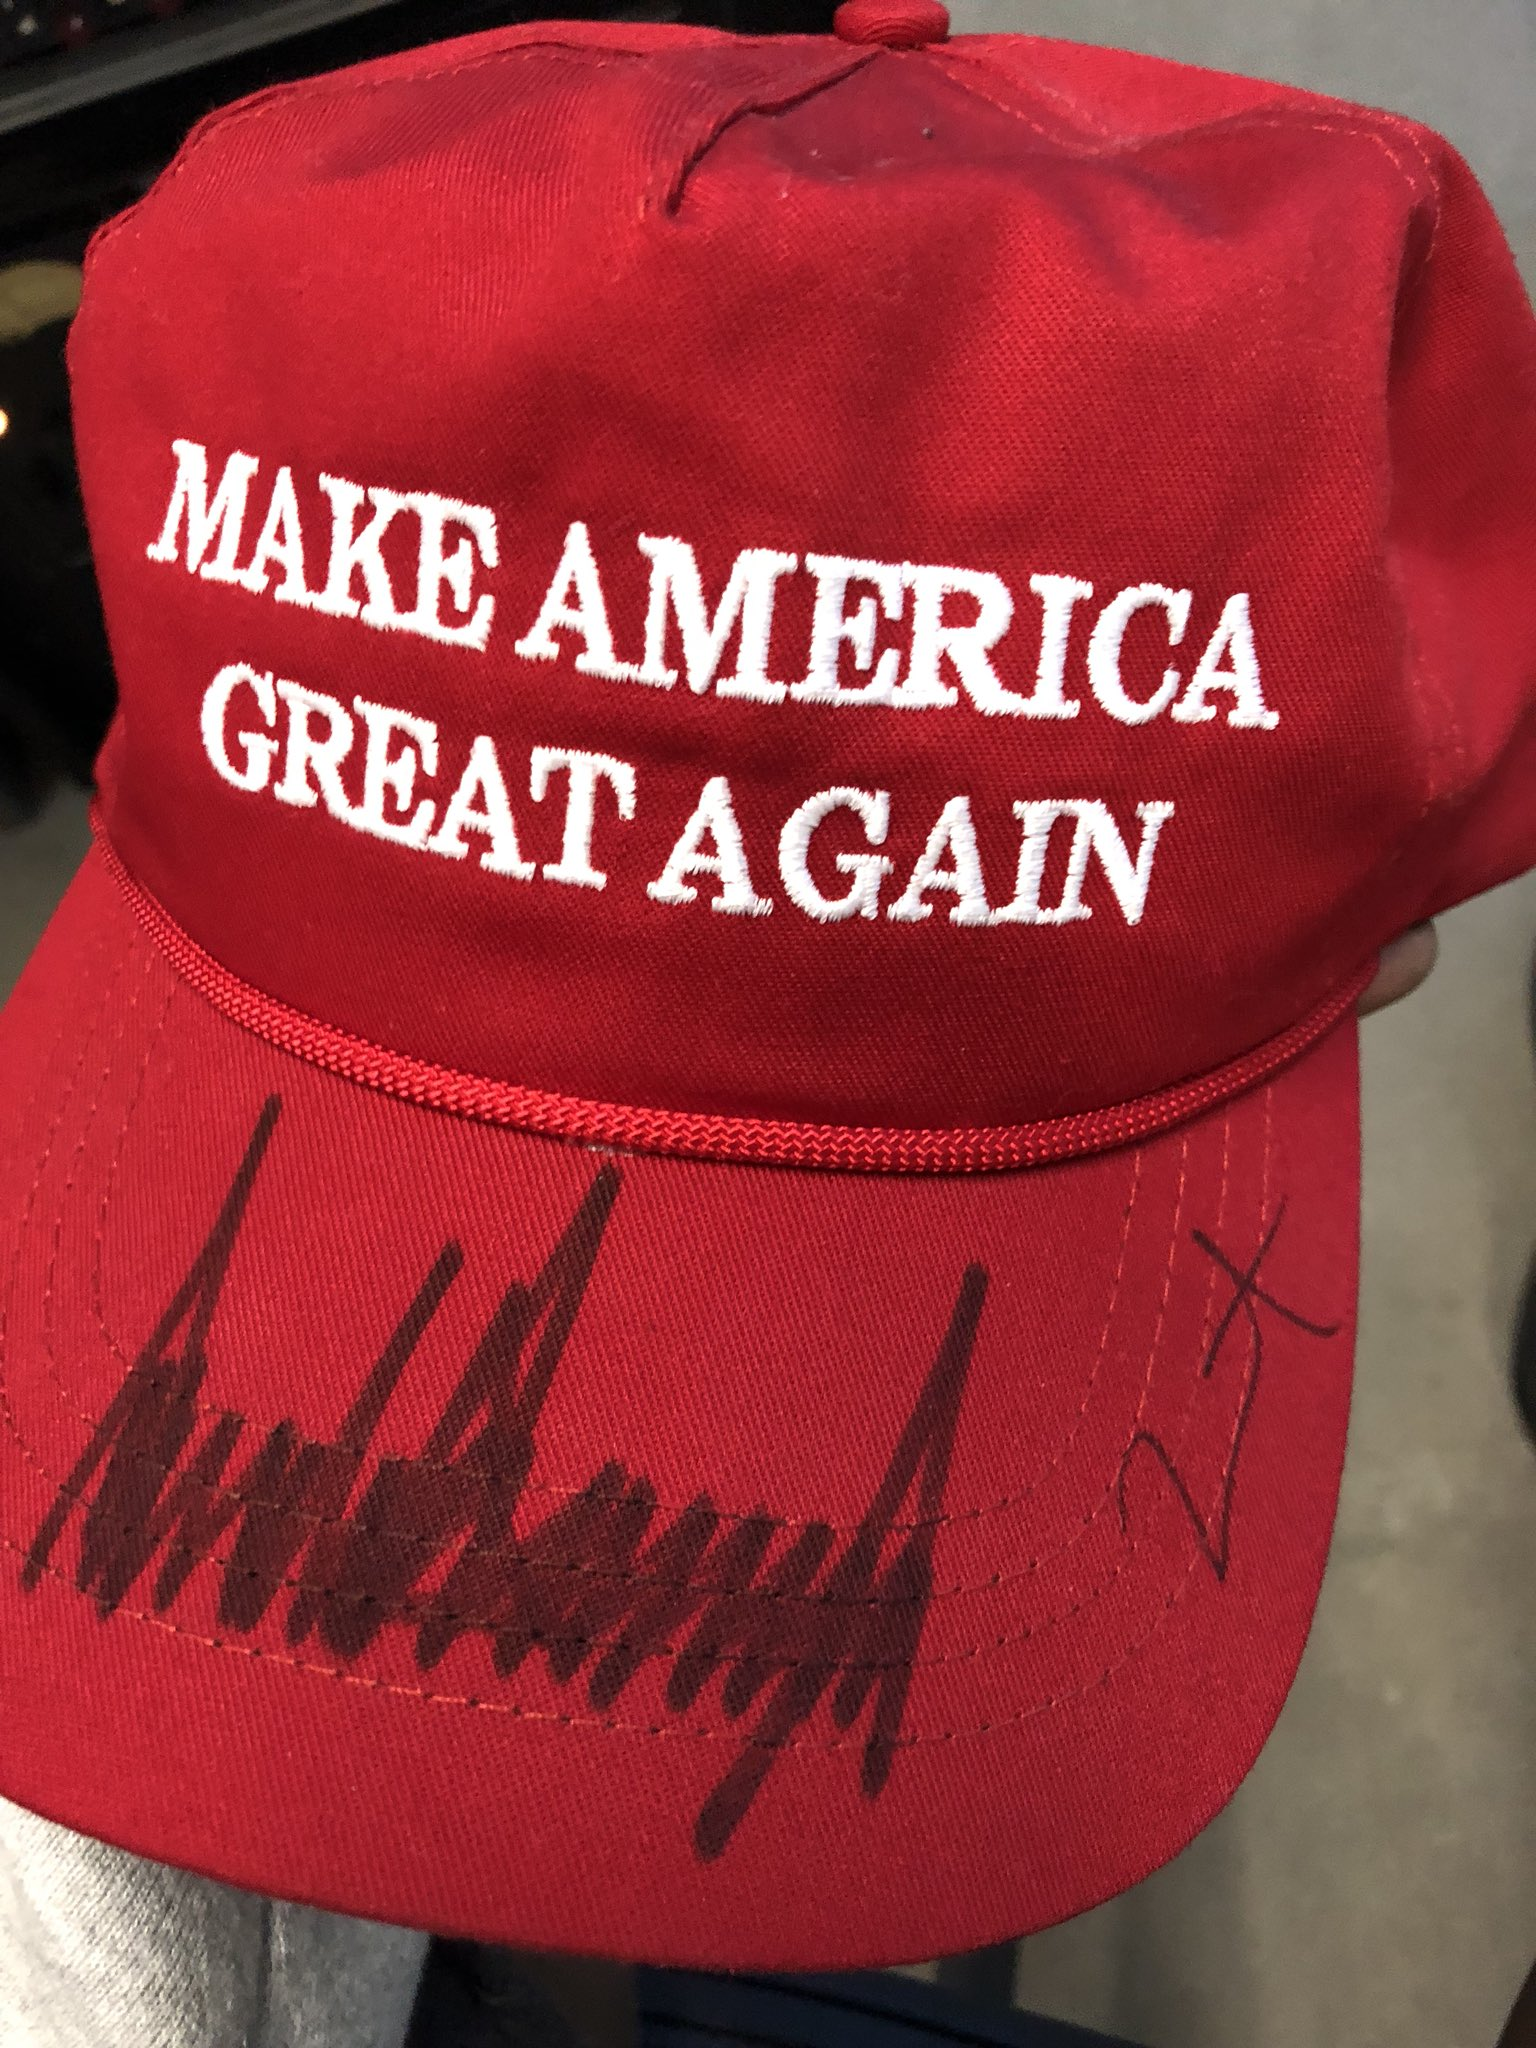 my MAGA hat is signed ゚ヤᆬ゚ヤᆬ゚ヤᆬ゚ヤᆬ゚ヤᆬ゚ヤᆬ゚ヤᆬ゚ヤᆬ゚ヤᆬ゚ヤᆬ゚ヤᆬ゚ヤᆬ゚ヤᆬ゚ヤᆬ゚ヤᆬ゚ヤᆬ゚ヤᆬ゚ヤᆬ゚ヤᆬ゚ヤᆬ゚ヤᆬ゚ヤᆬ゚ヤᆬ゚ヤᆬ゚ヤᆬ゚ヤᆬ゚ヤᆬ゚ヤᆬ゚ヤᆬ゚ヤᆬ https://t.co/DrDHJybS8V